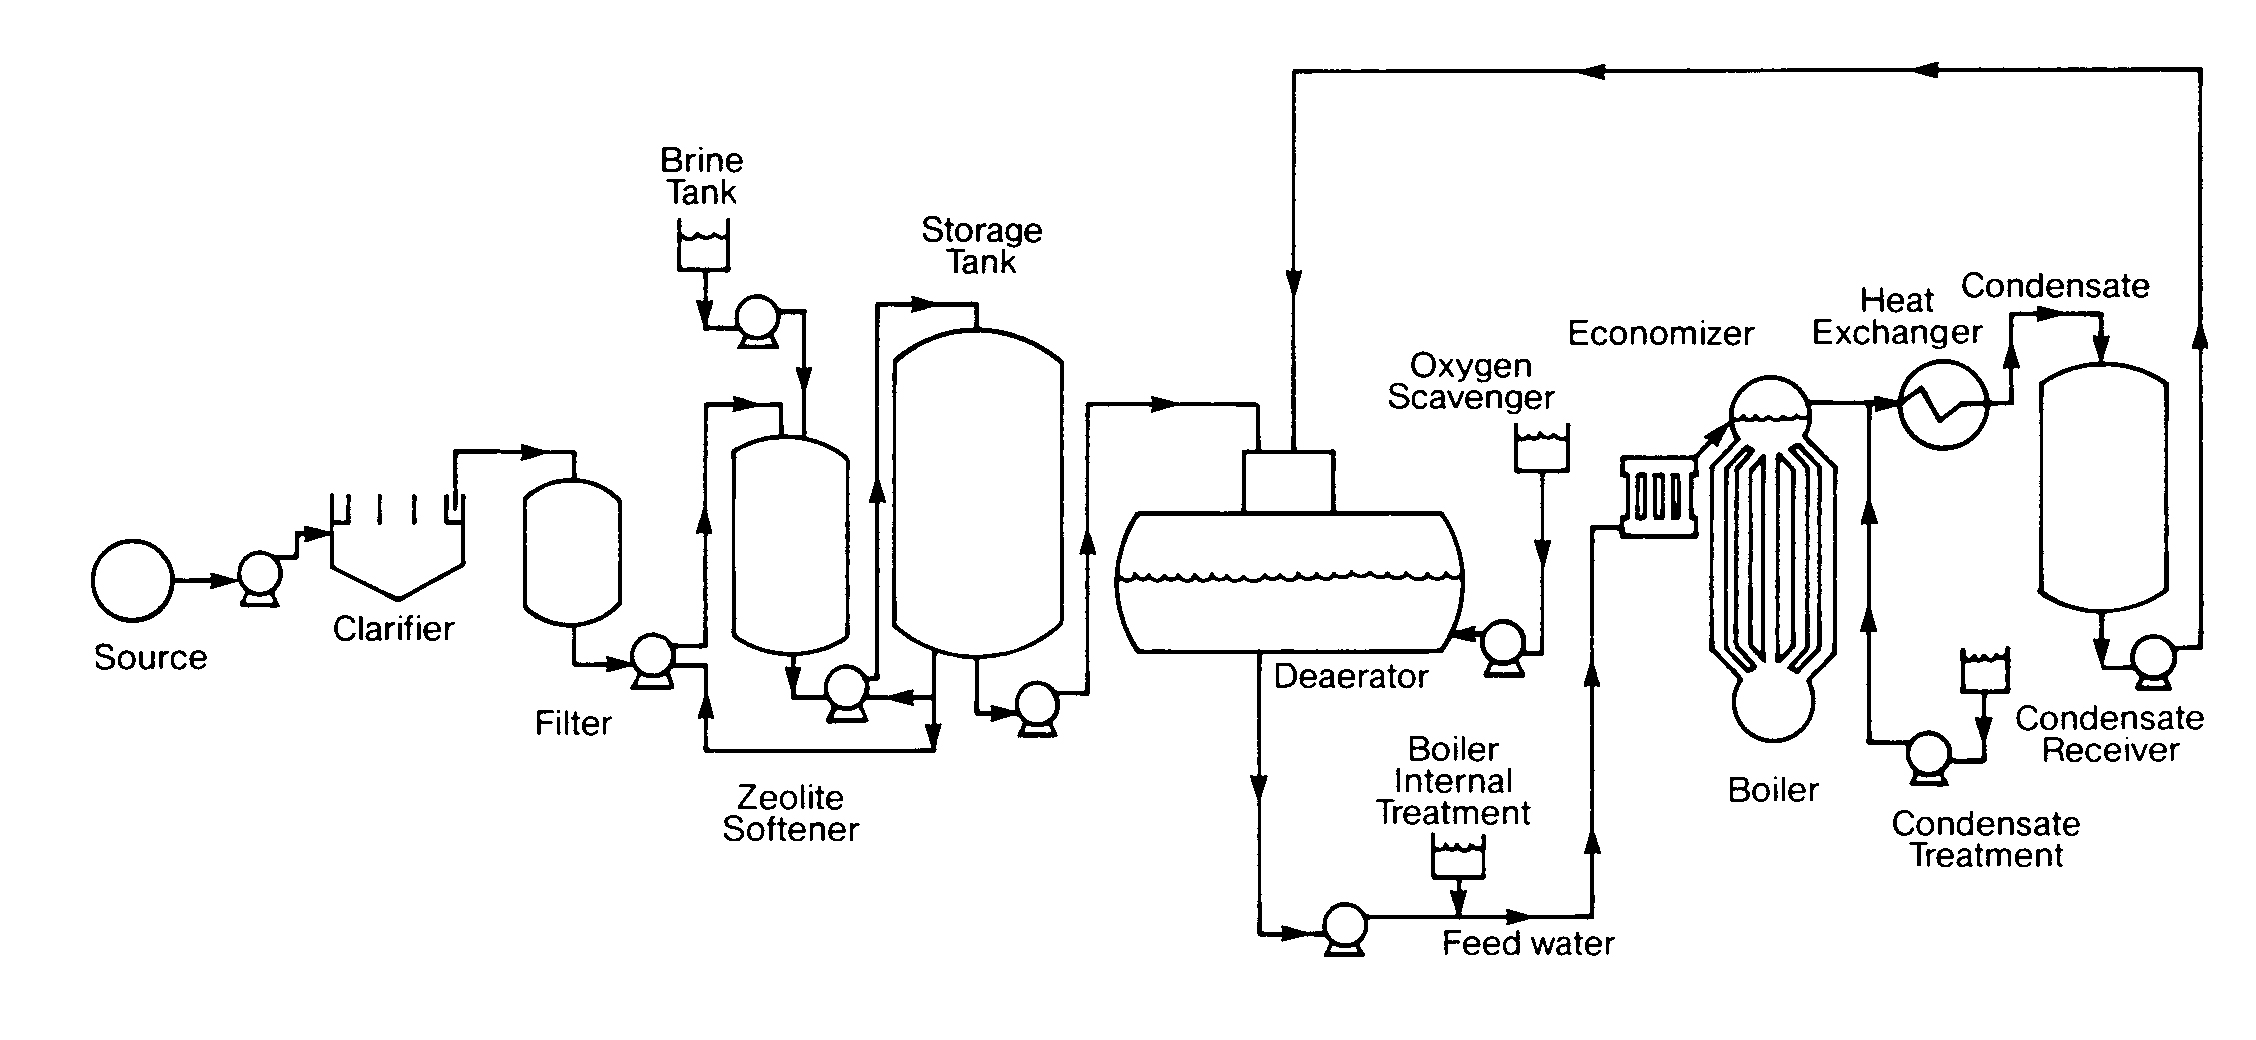 medium resolution of dunkirk boiler wiring diagram central heating wiring